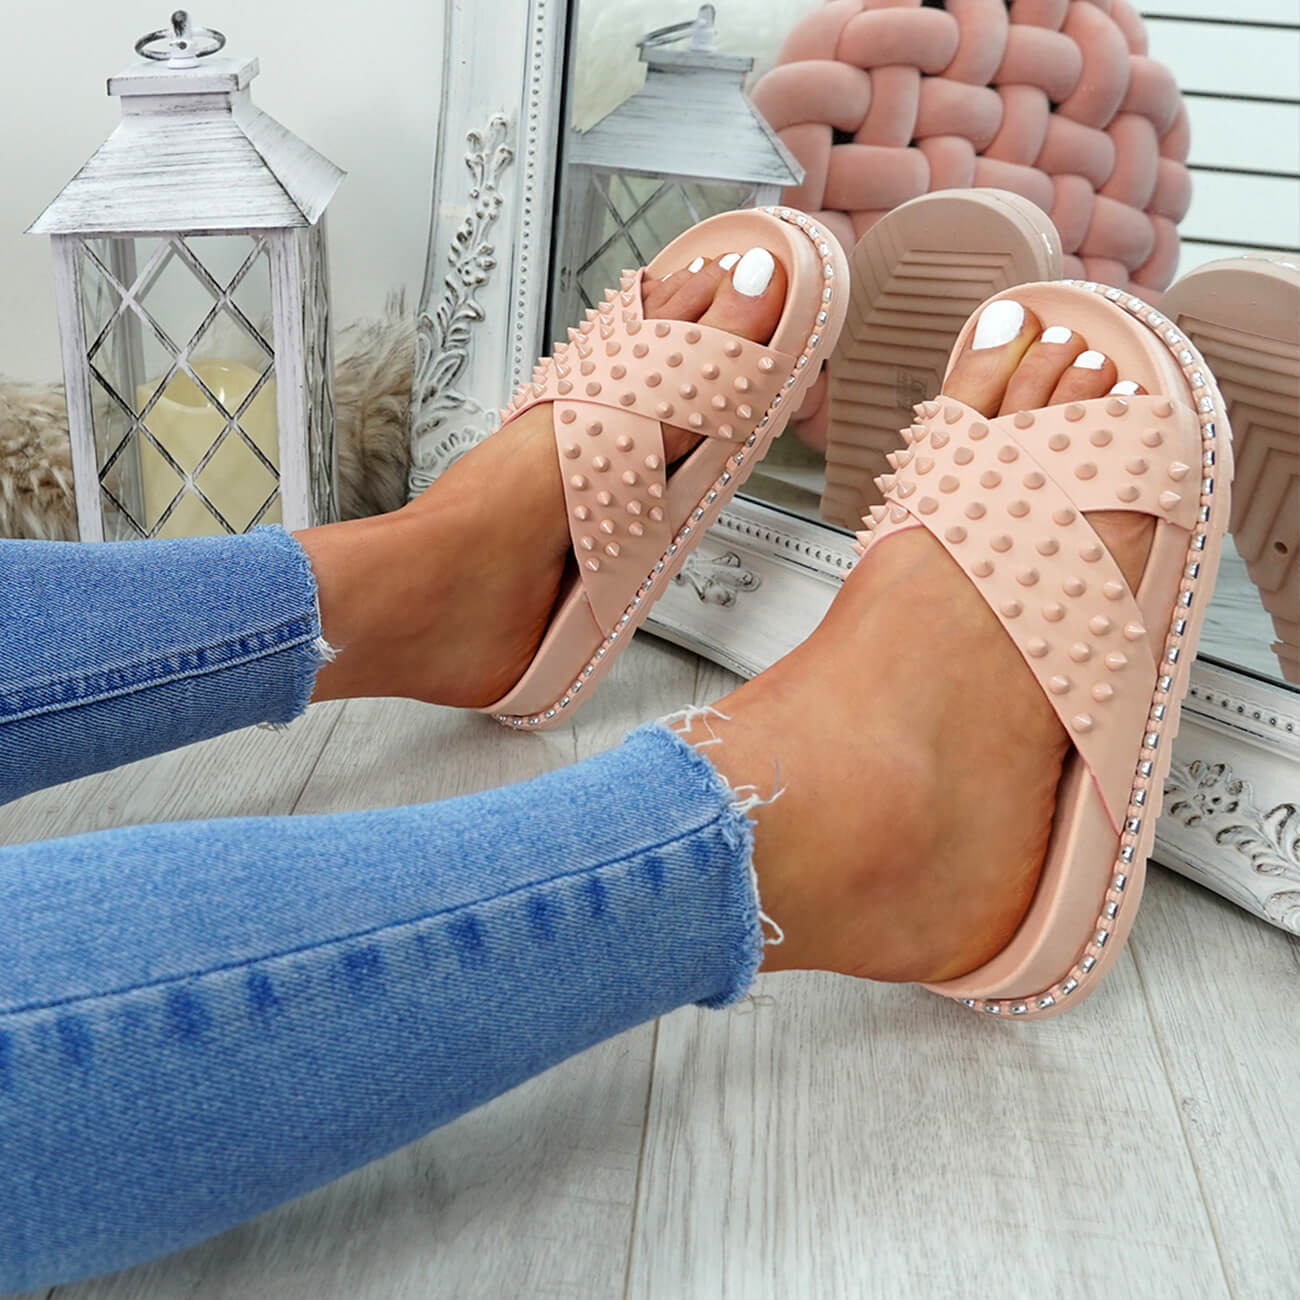 WOMENS-LADIES-SPIKE-STUDS-PEEP-TOE-FLAT-SANDALS-FLIP-FLOPS-SLIP-ON-SHOES-SIZE thumbnail 15